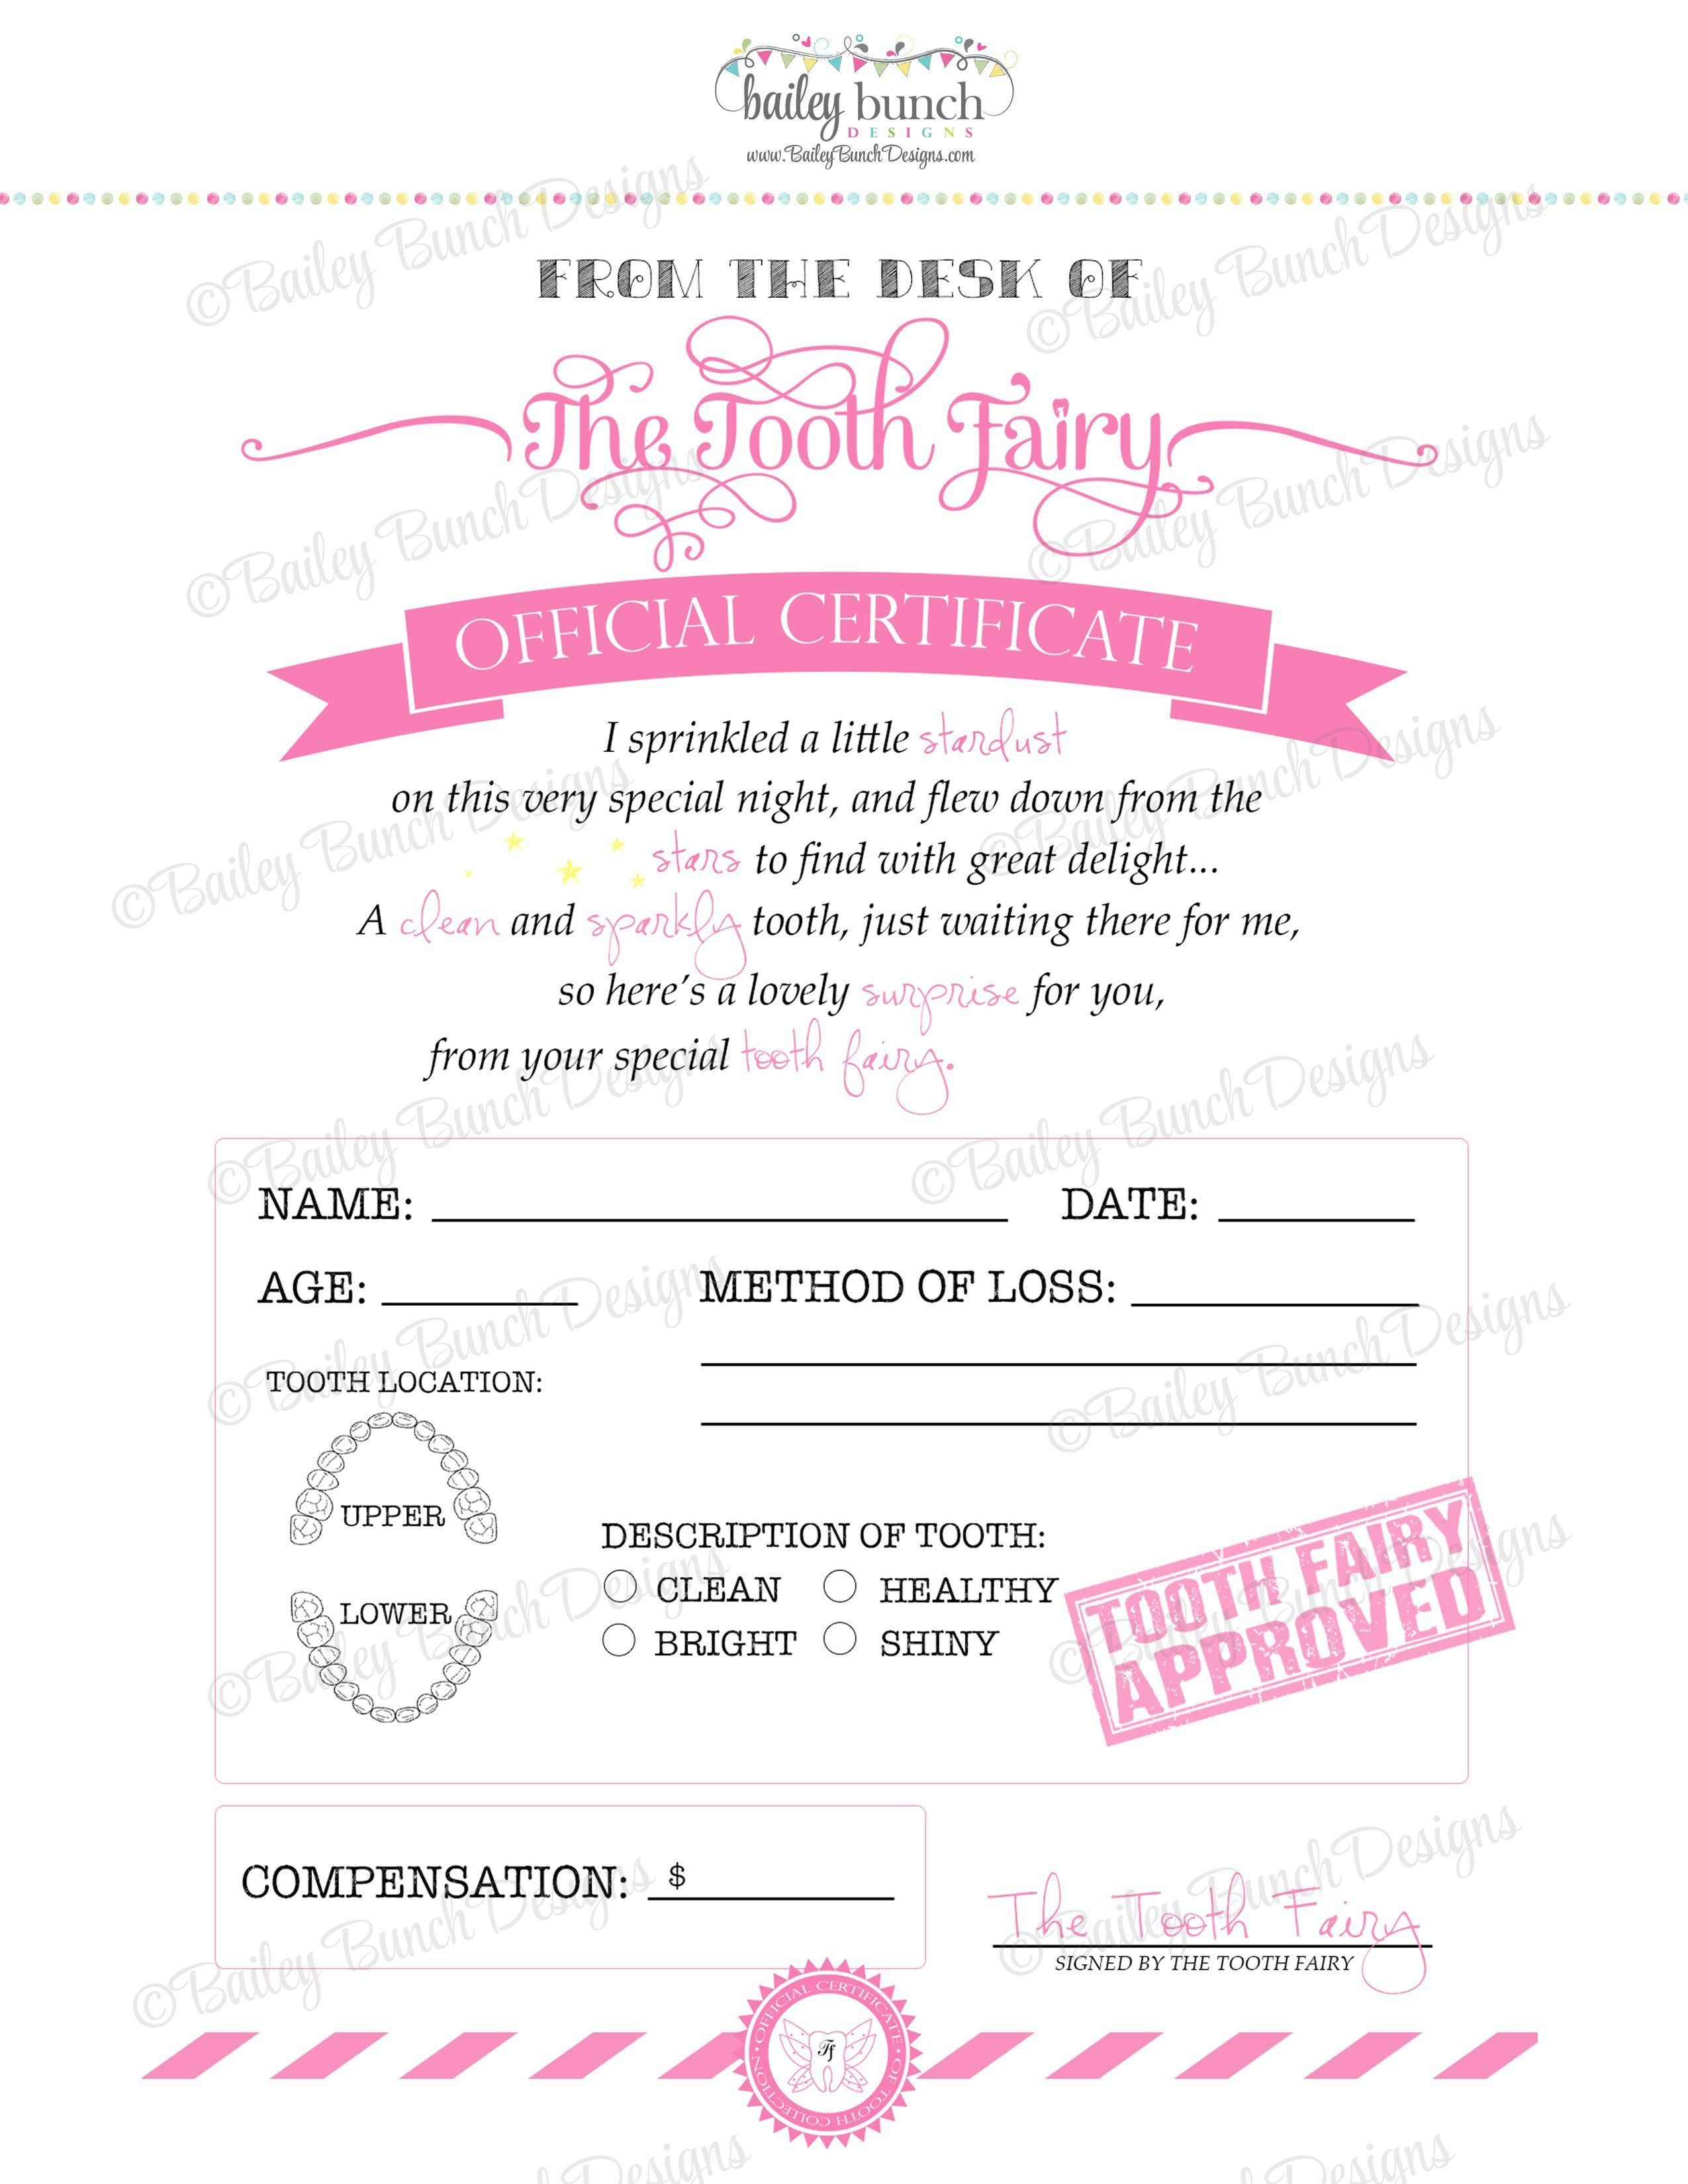 tooth fairy certificate pink instant download idtoothpink0520 tooth fairy receipt tooth fairy certificate